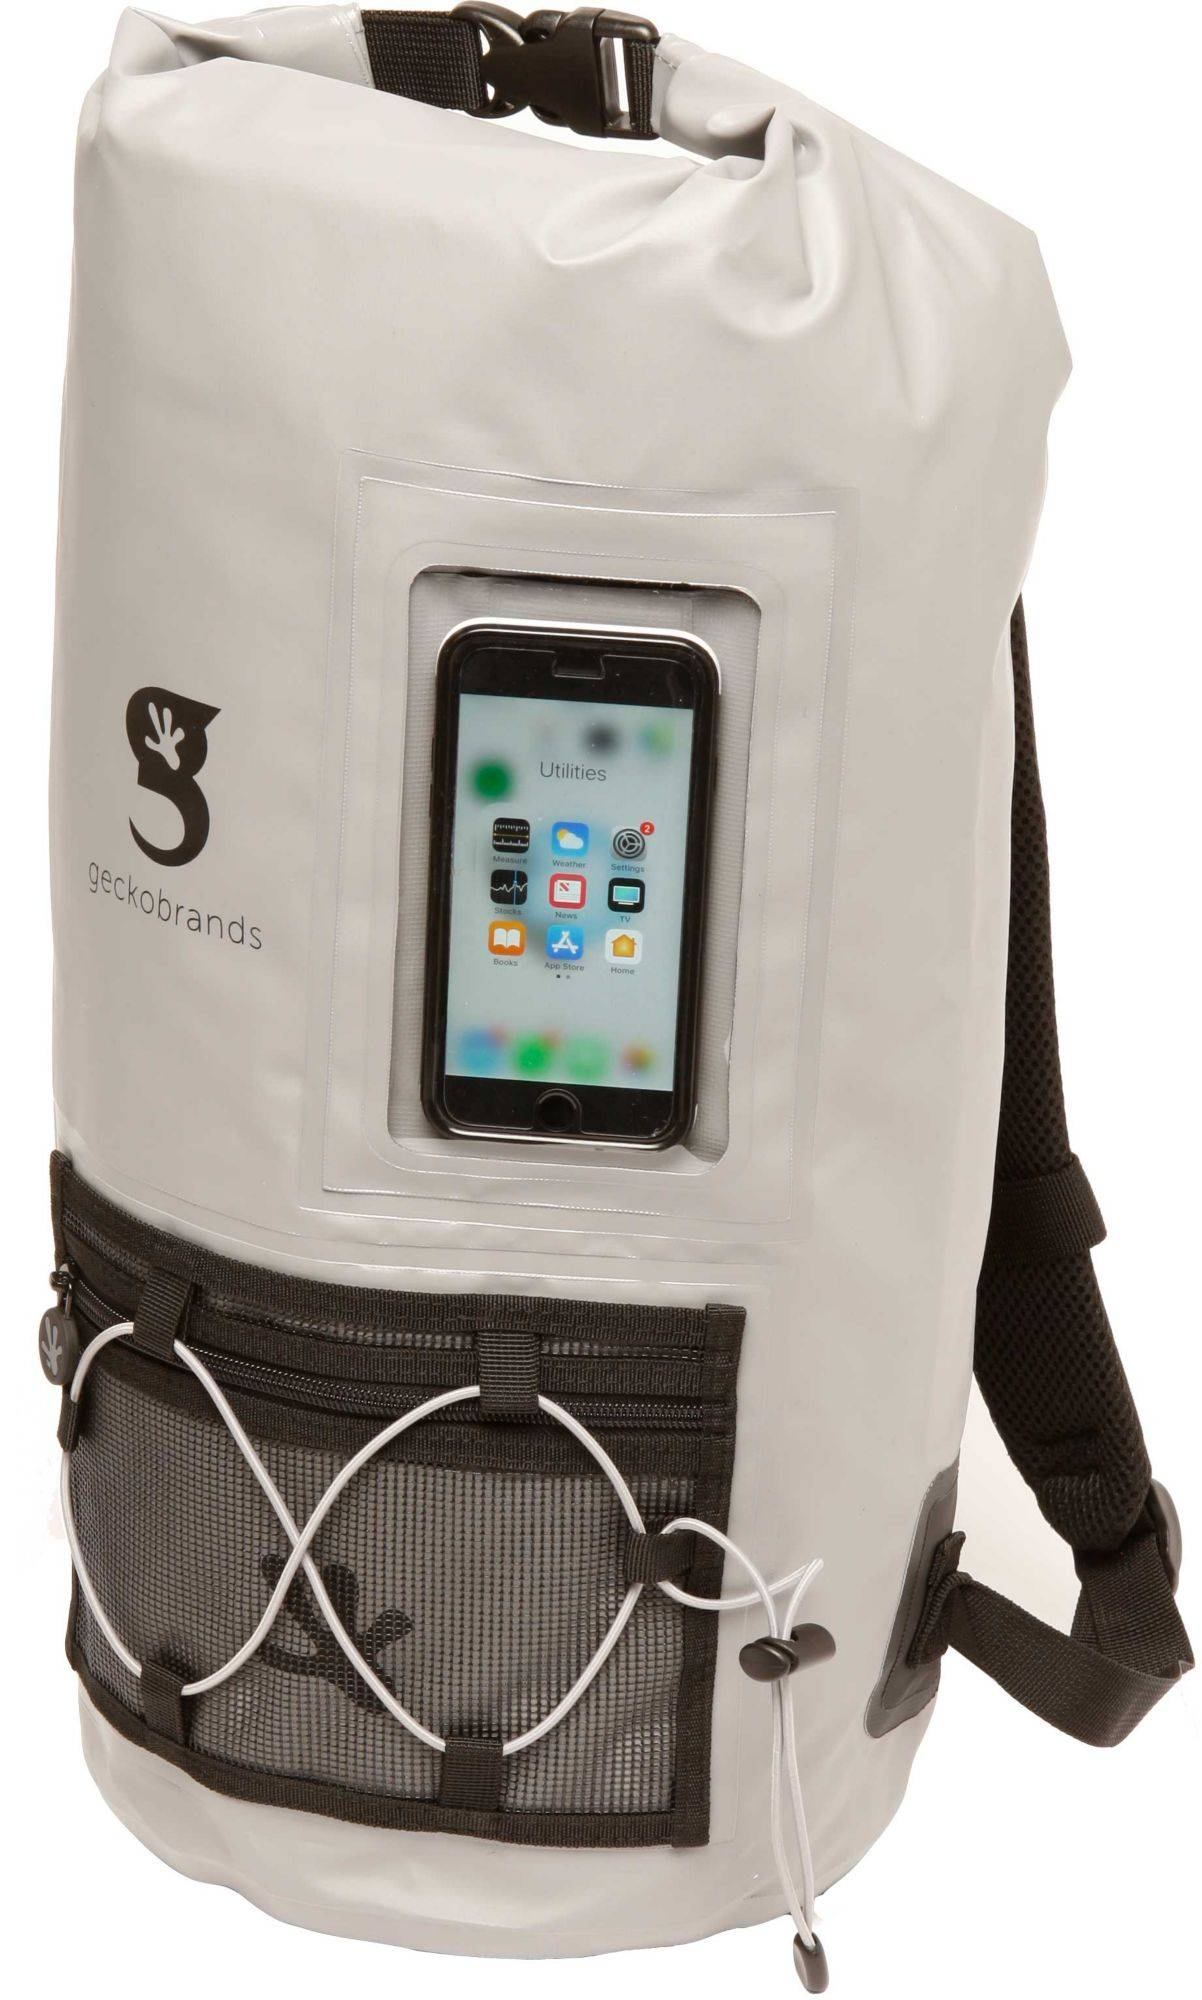 geckobrands Waterproof Hydroner Backpack with Clear Phone Compartment, Gray